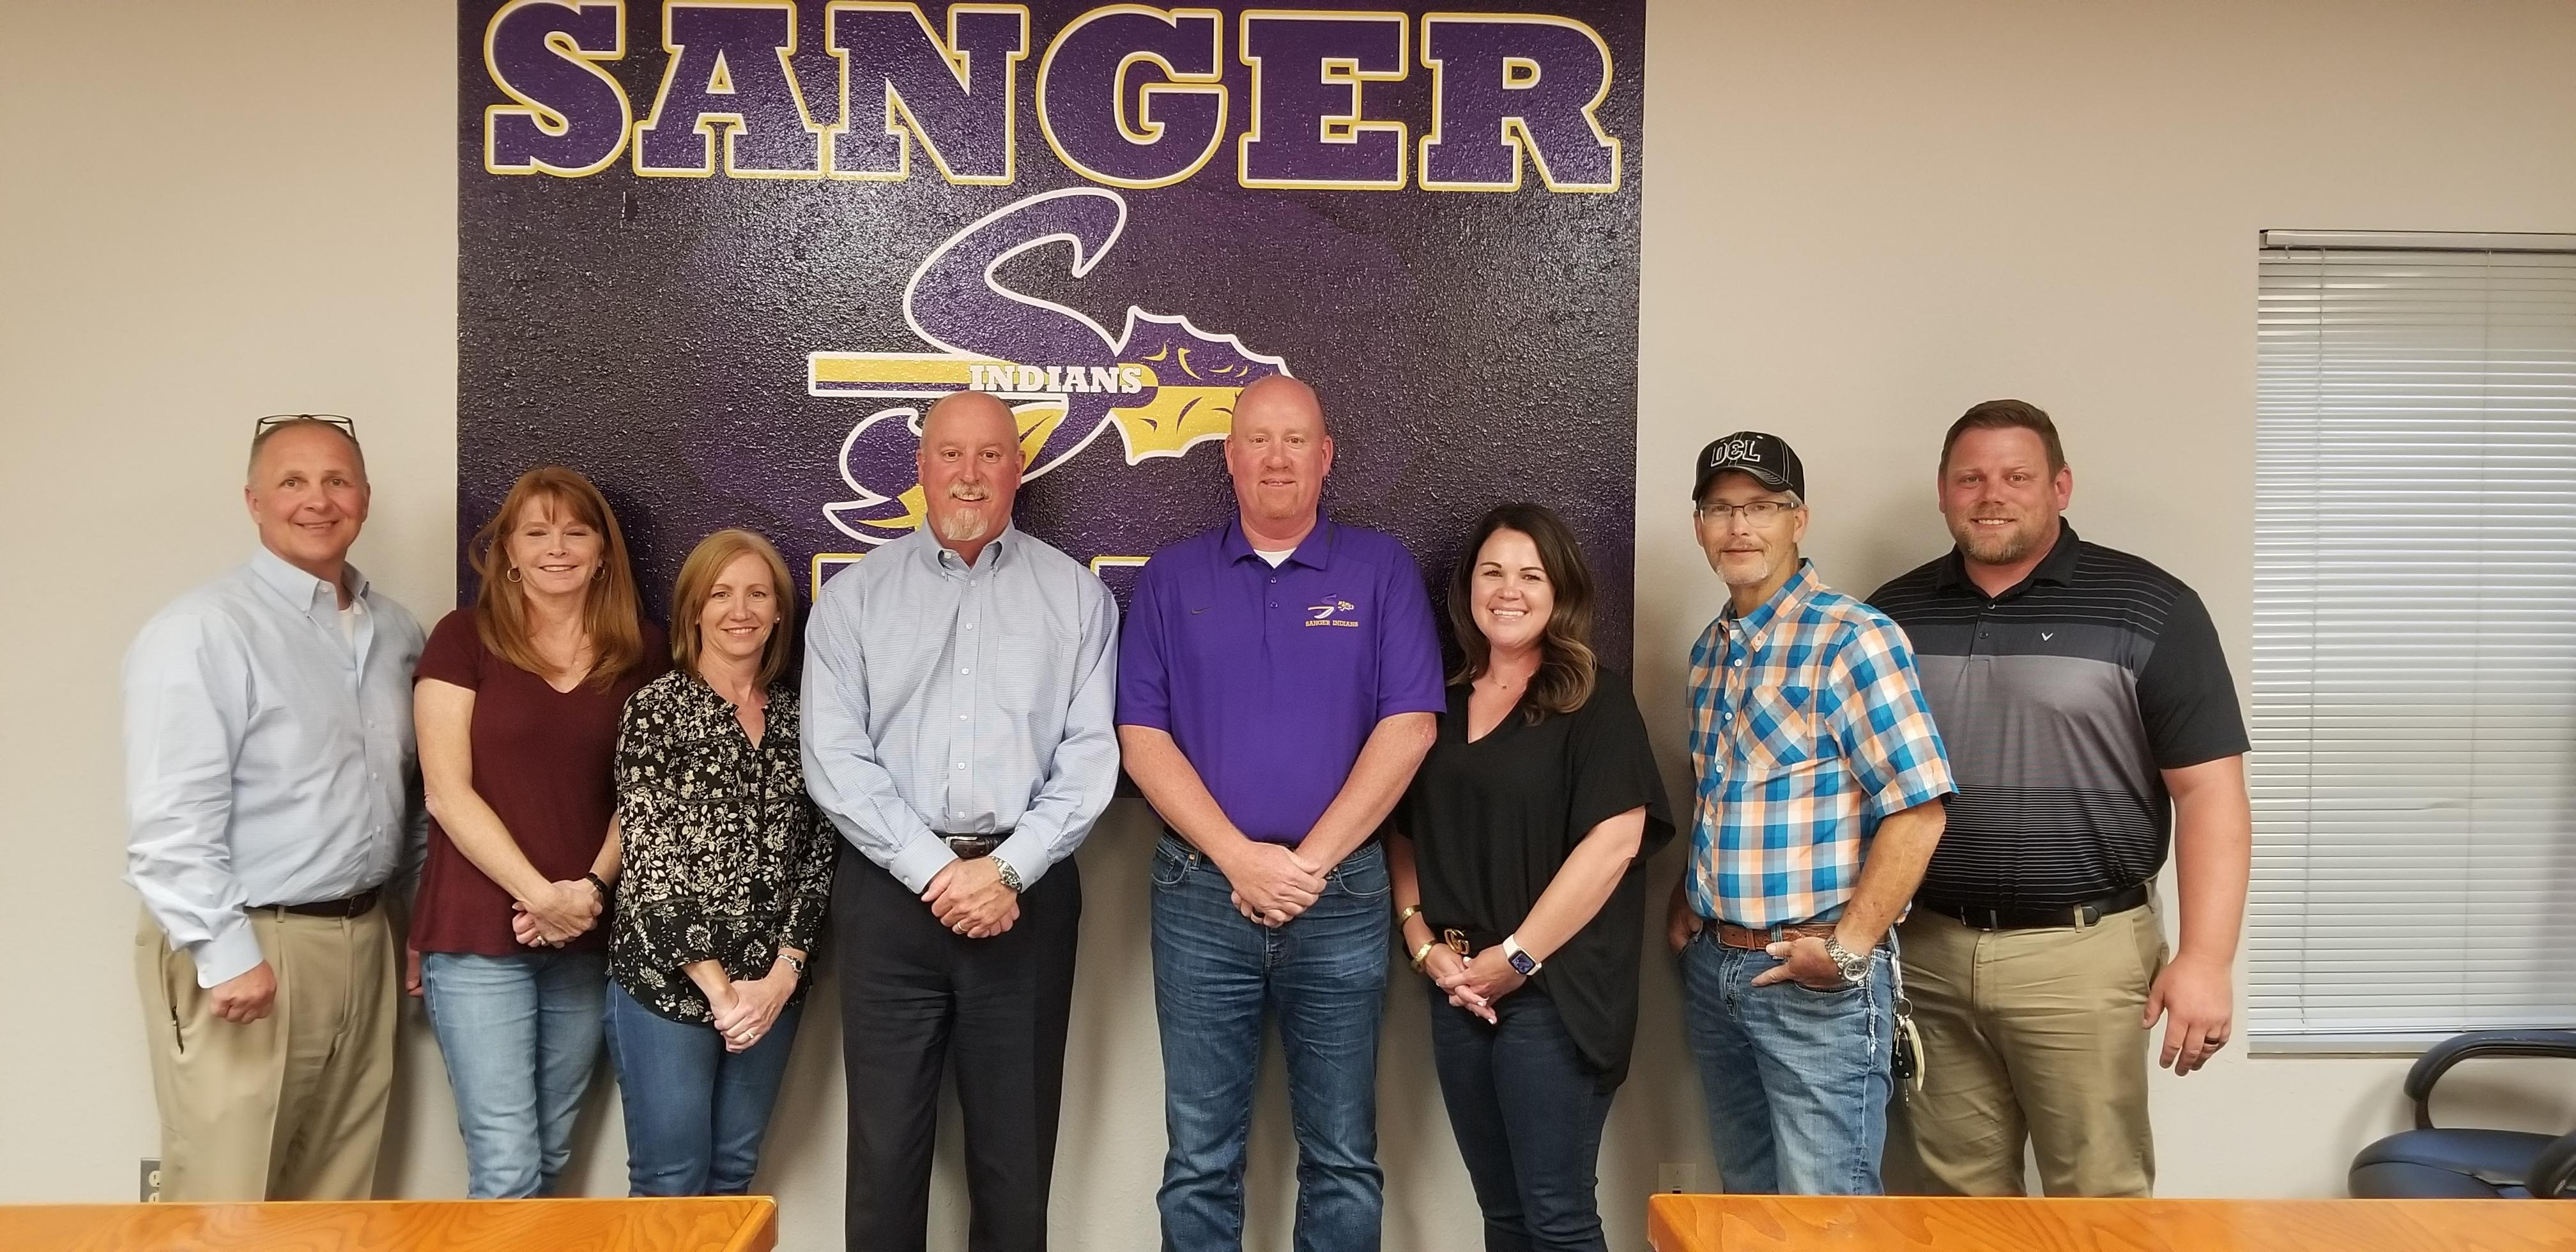 Sanger ISD School Board and Superintendent - Jimmy Howard, Lisa Cody, Secretary AnnMarie Afflerbach, President Ken Scribner, Superintendent Dr. Tommy Hunter, Vice President Sarah York, Mitch Hammonds, and Zach Thompson